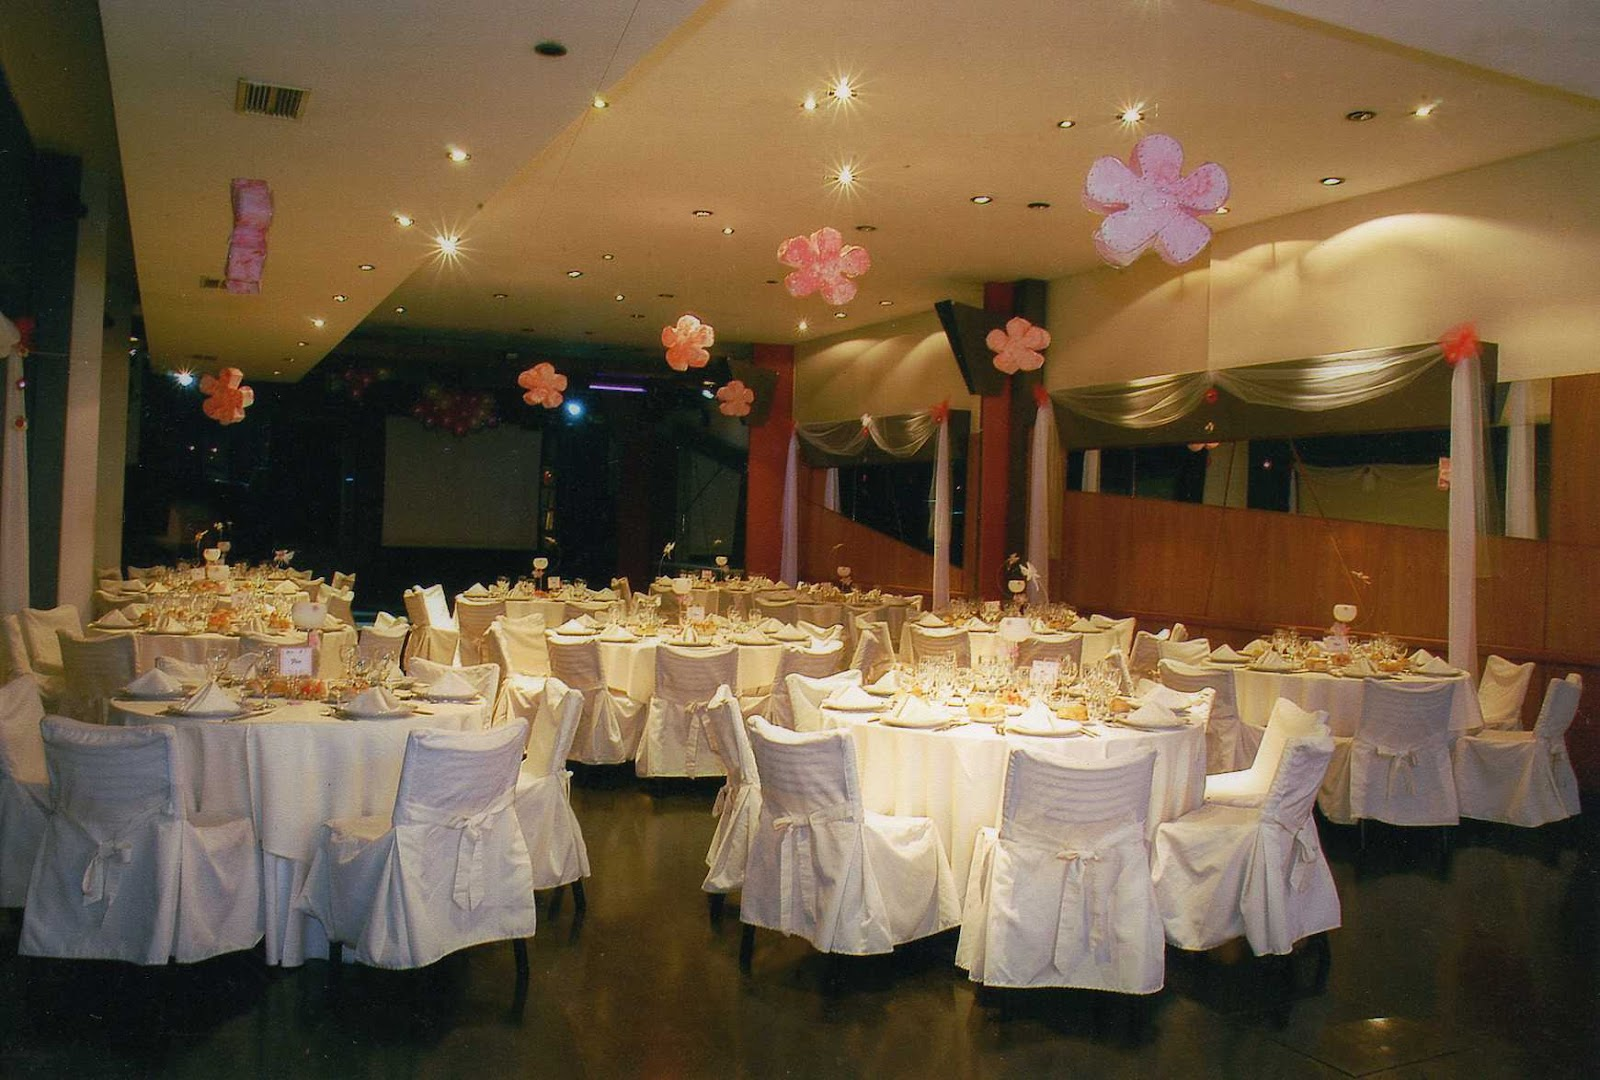 Faar eventos decoraciones for Arreglos para boda en salon